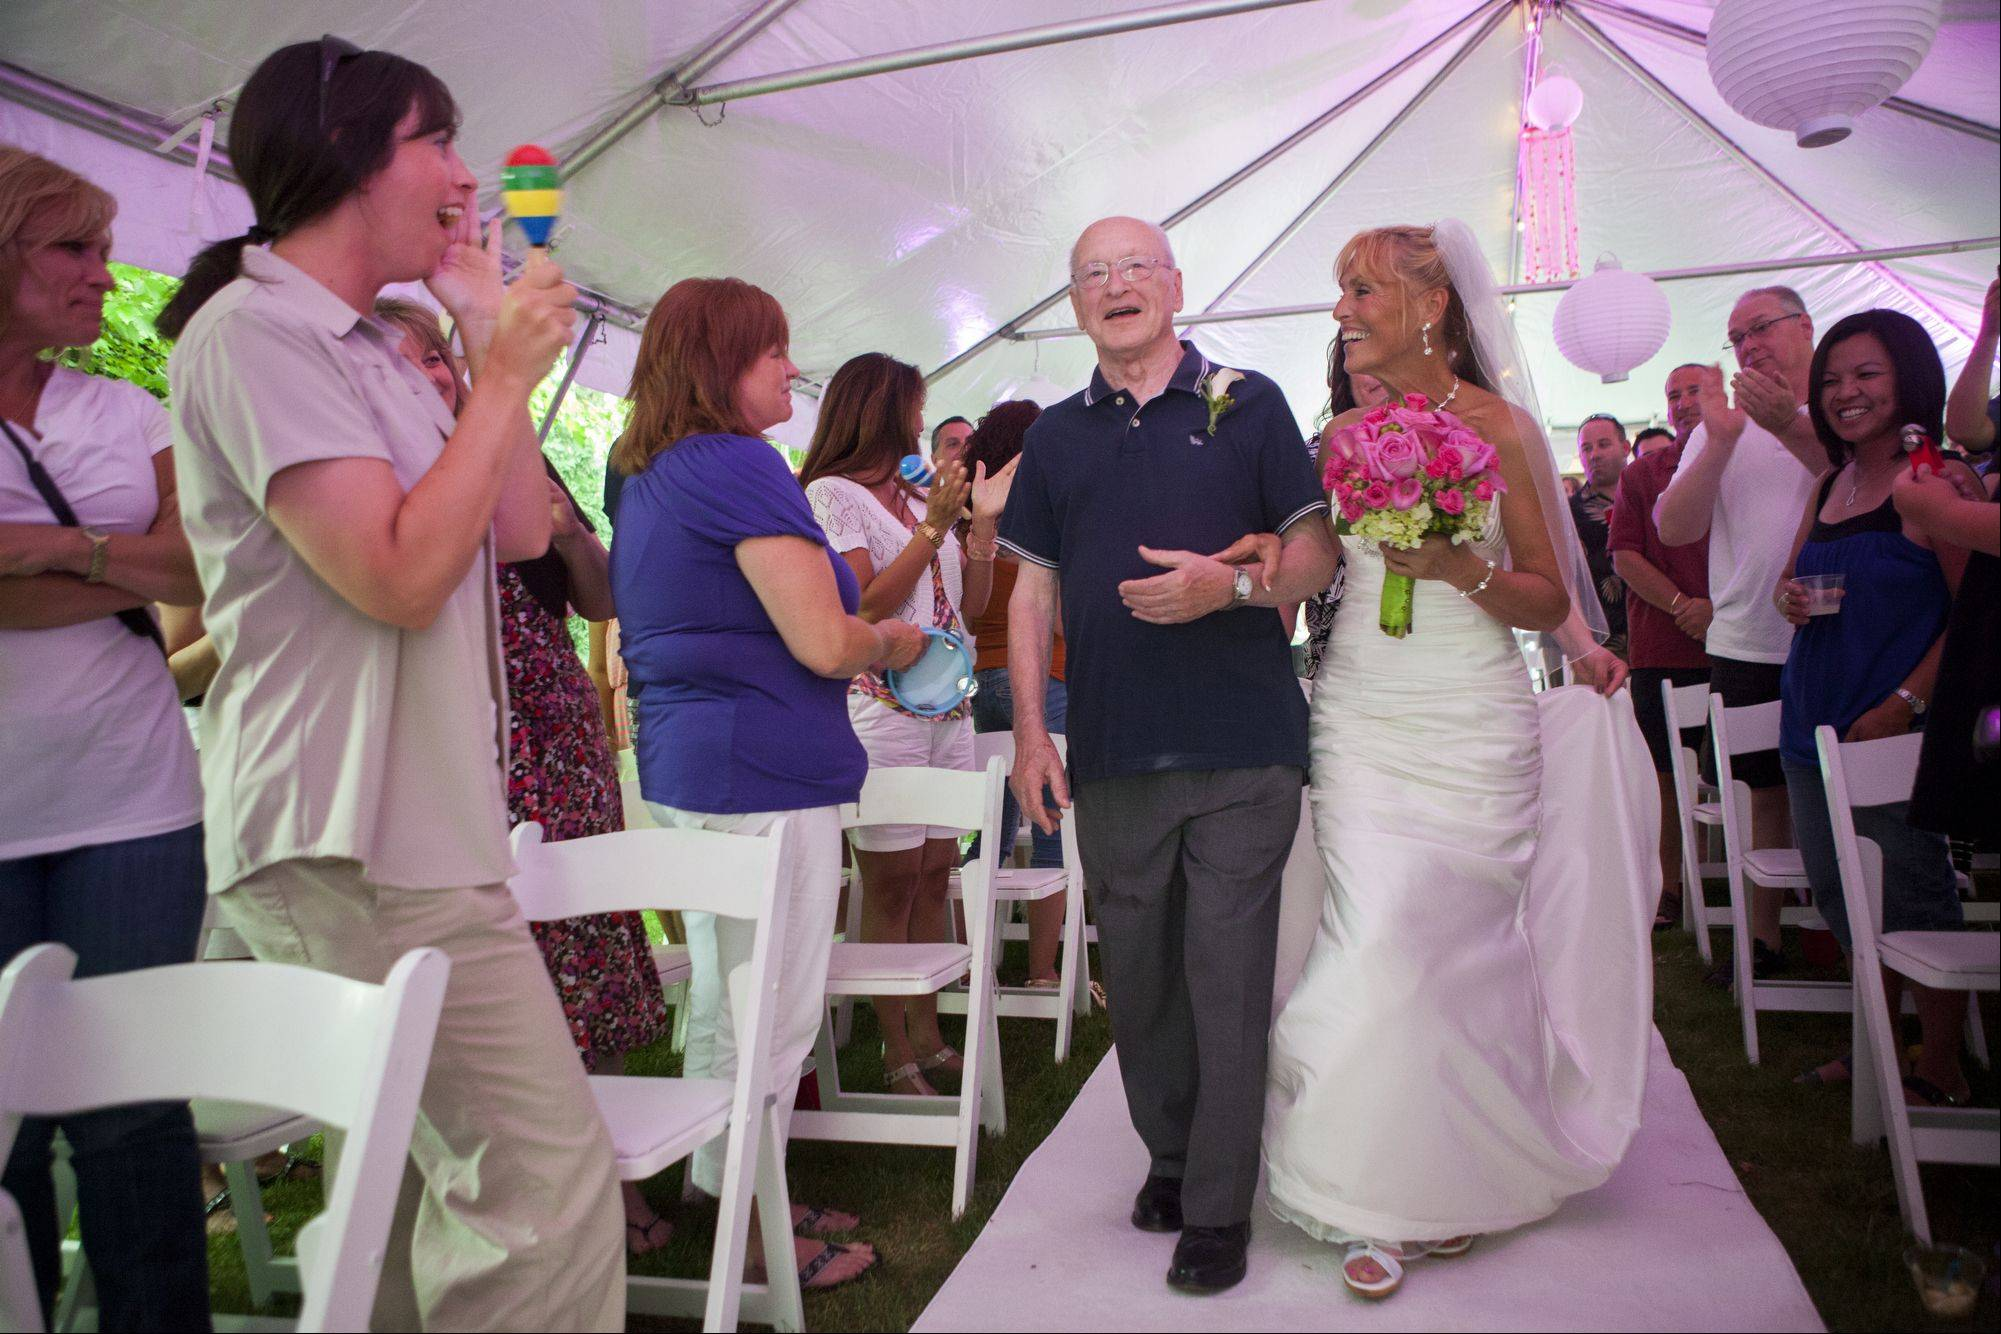 Libby Watkins and her father, retired Cook County Judge Edward Fiala, walk down the aisle, which was set up only minutes before the flash mob wedding Sunday night in Schaumburg.